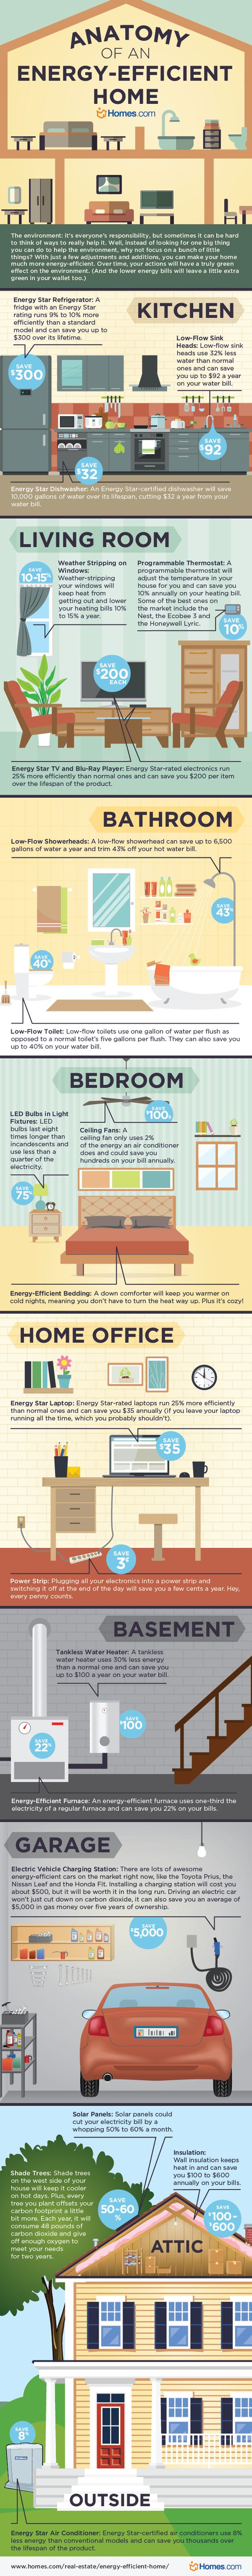 Thanks to @Homes.com for using our content to make this great infographic on energy efficient homes!: